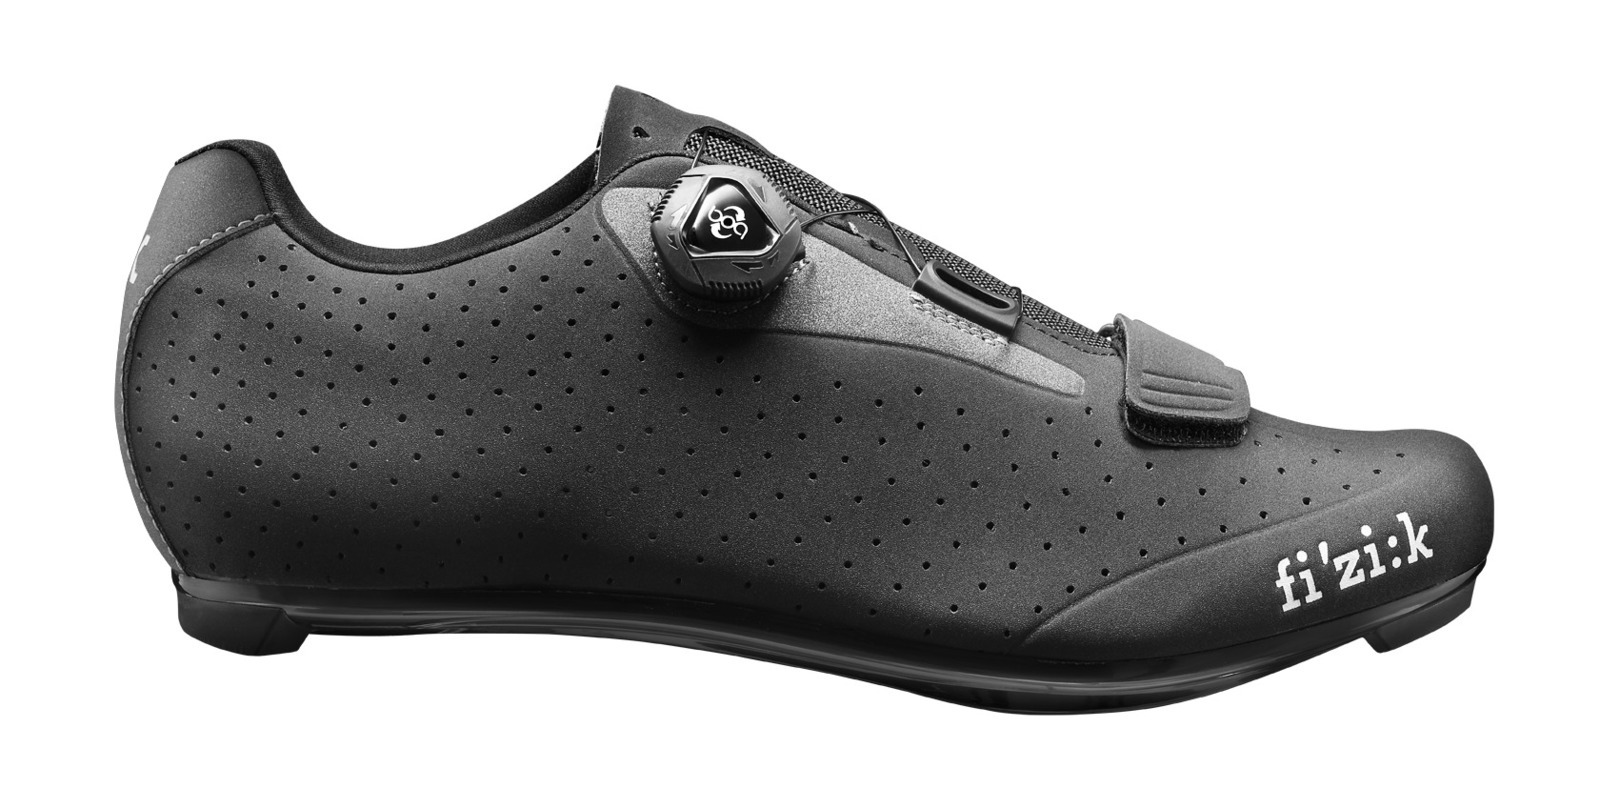 Fizik R5 UOMO BOA Road Cycling Shoes Black/Dark Gray 42.5